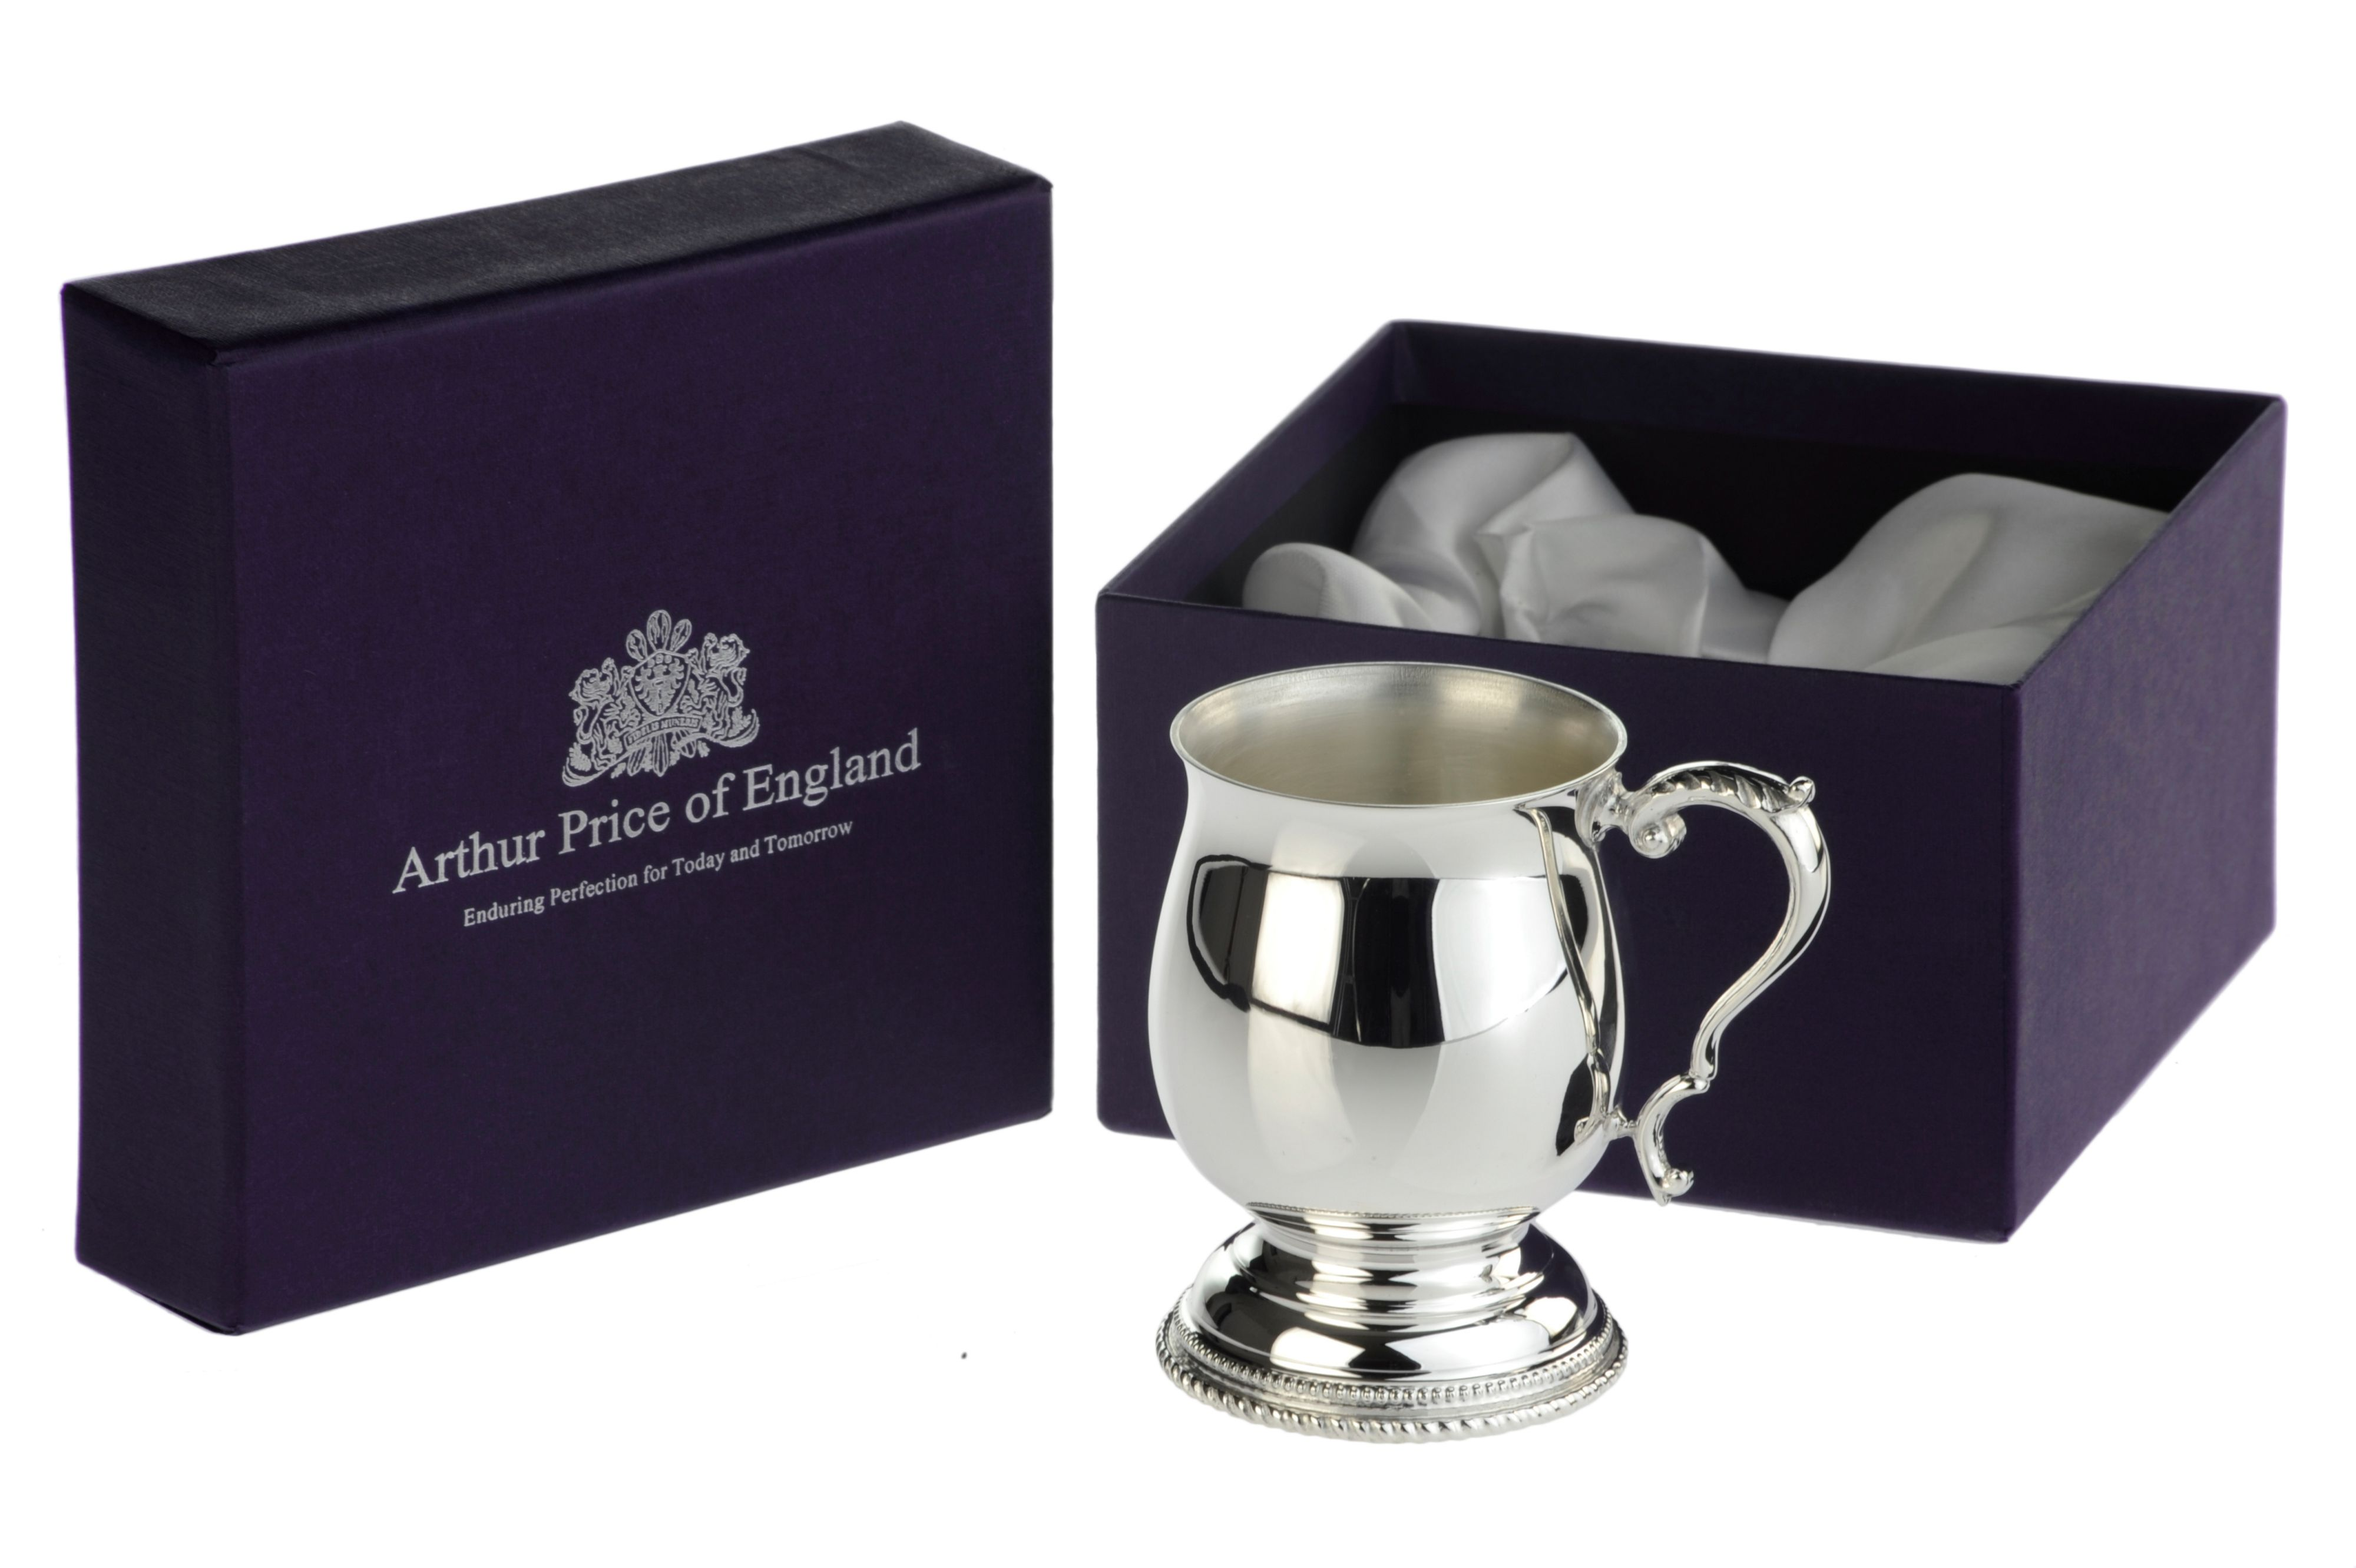 Silver plated childs tankard